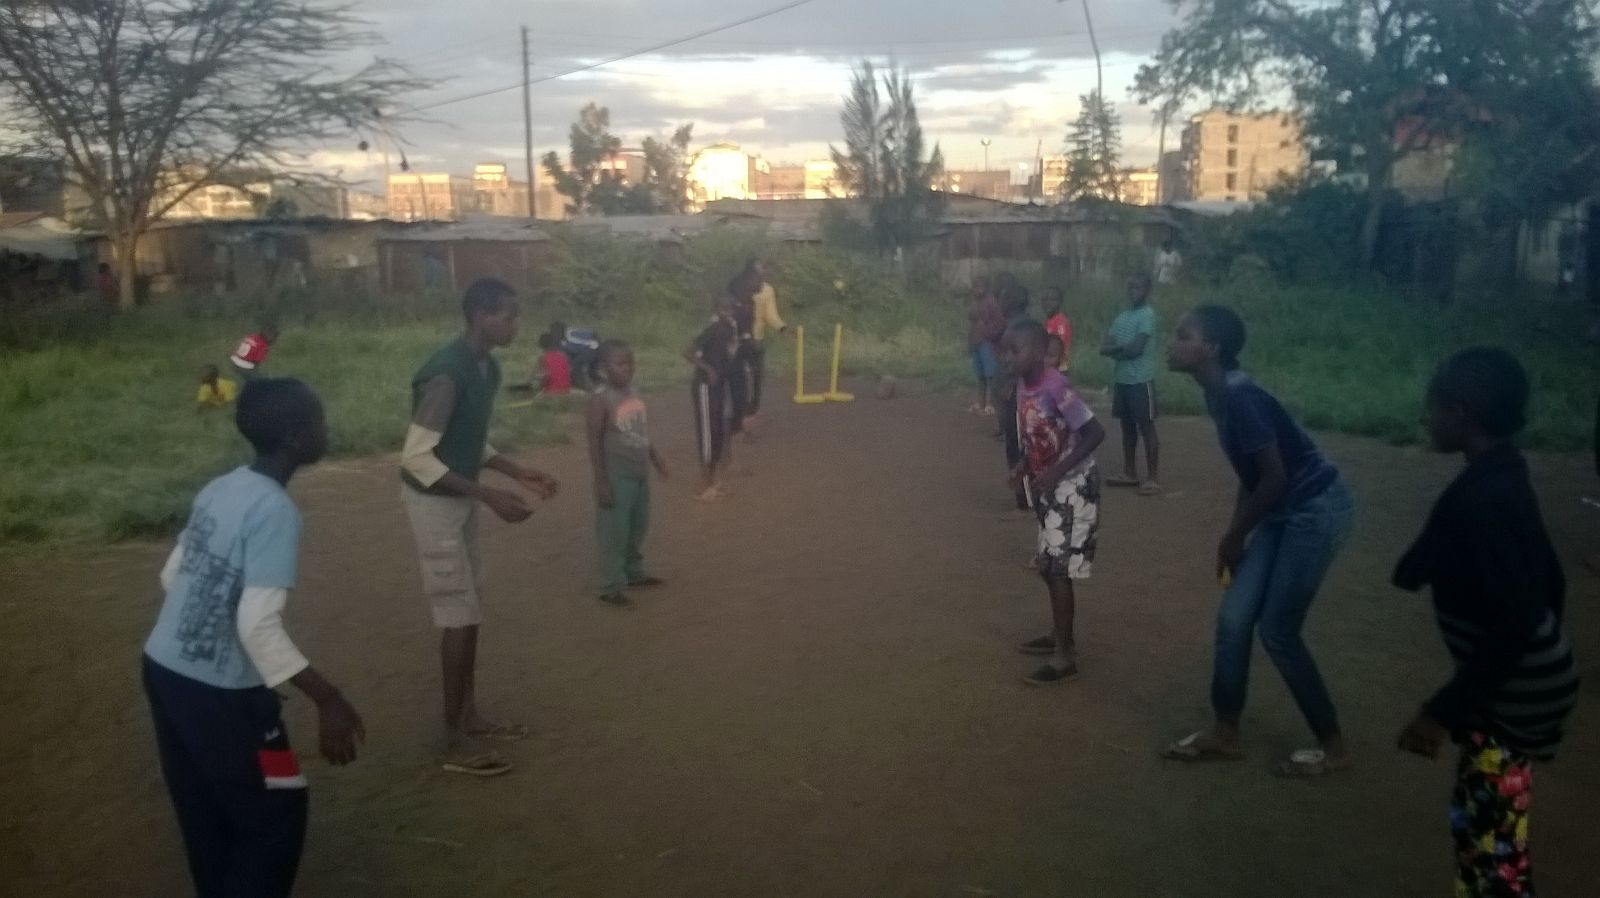 Some of the Kids enjoying a game of cricket after school.